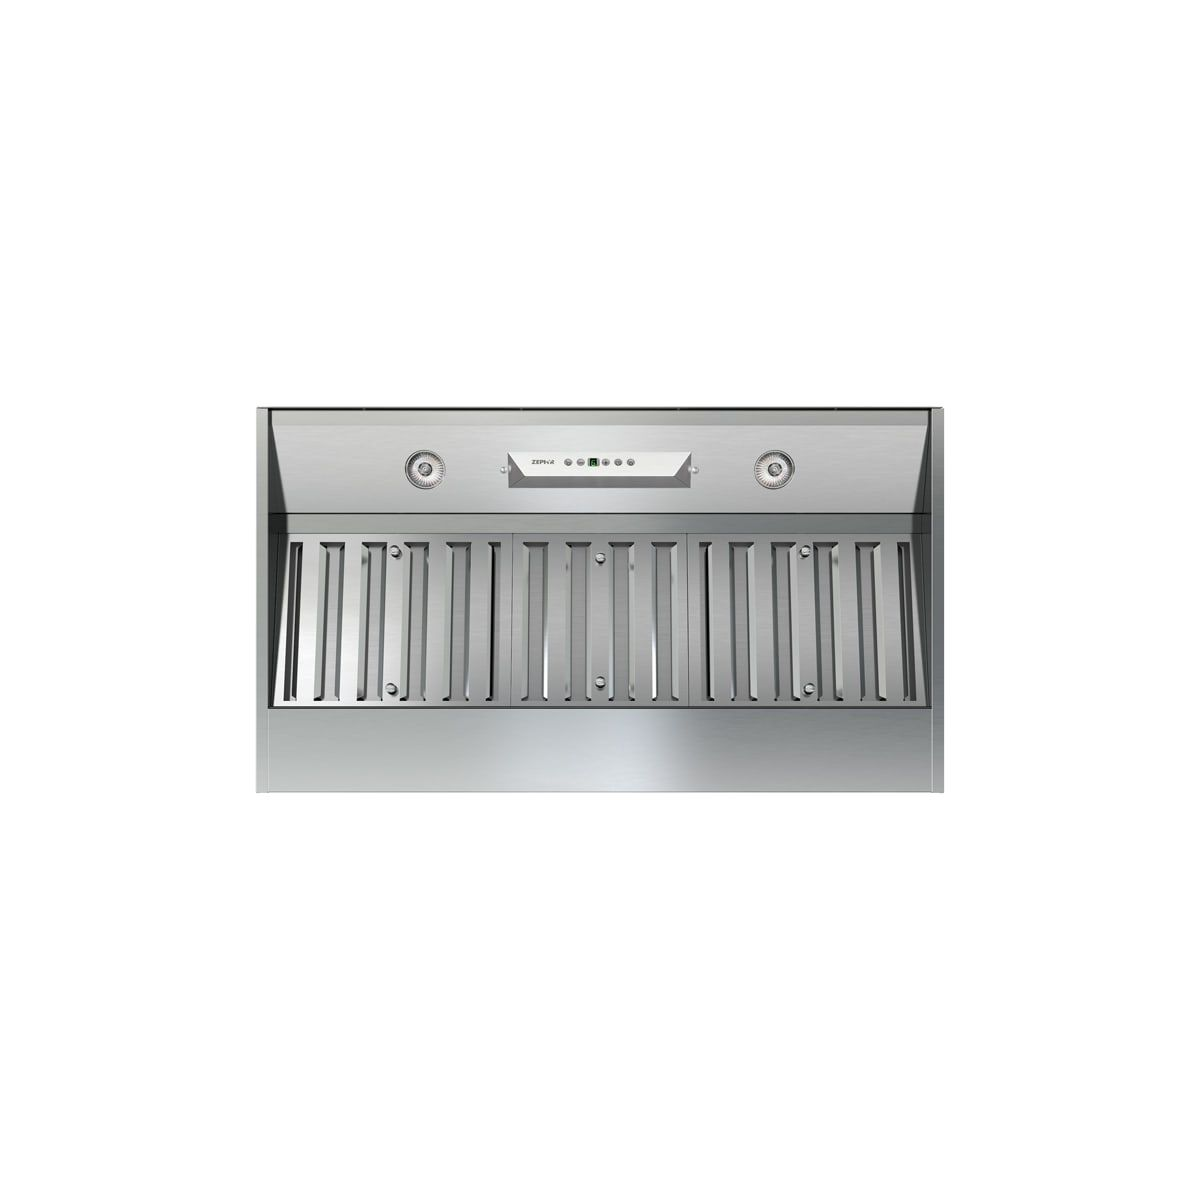 Zephyr Ak9246as Stainless Steel 1200 Cfm 48 Inch Wide Stainless Steel Range Hood Insert With Rf Remote Stainless Steel Range Hood Range Hood Insert Range Hood